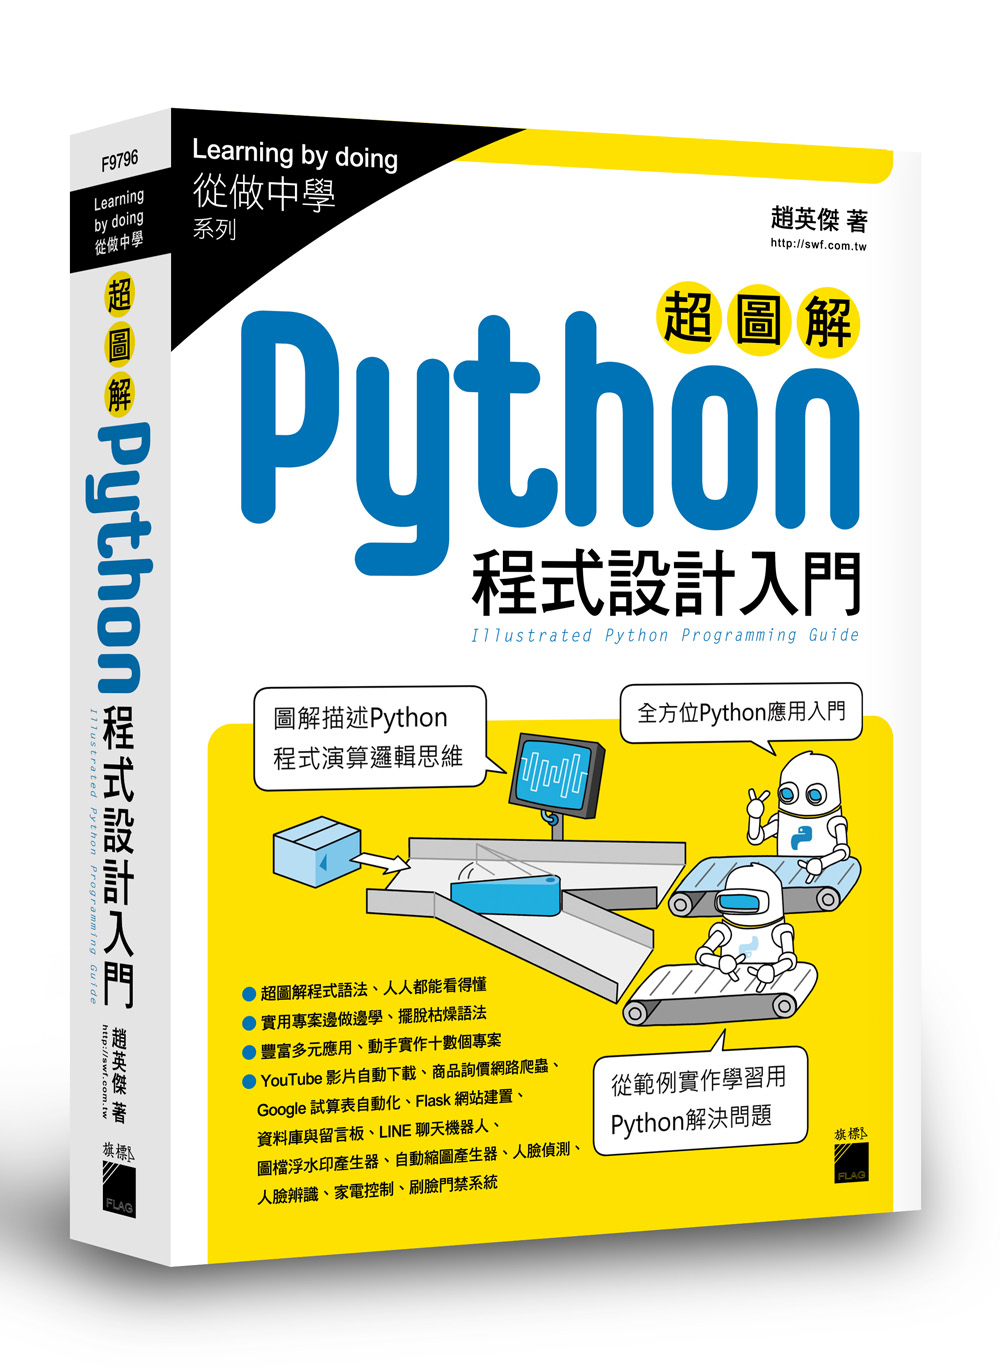 swf-python-for-beginners-book_100x1368